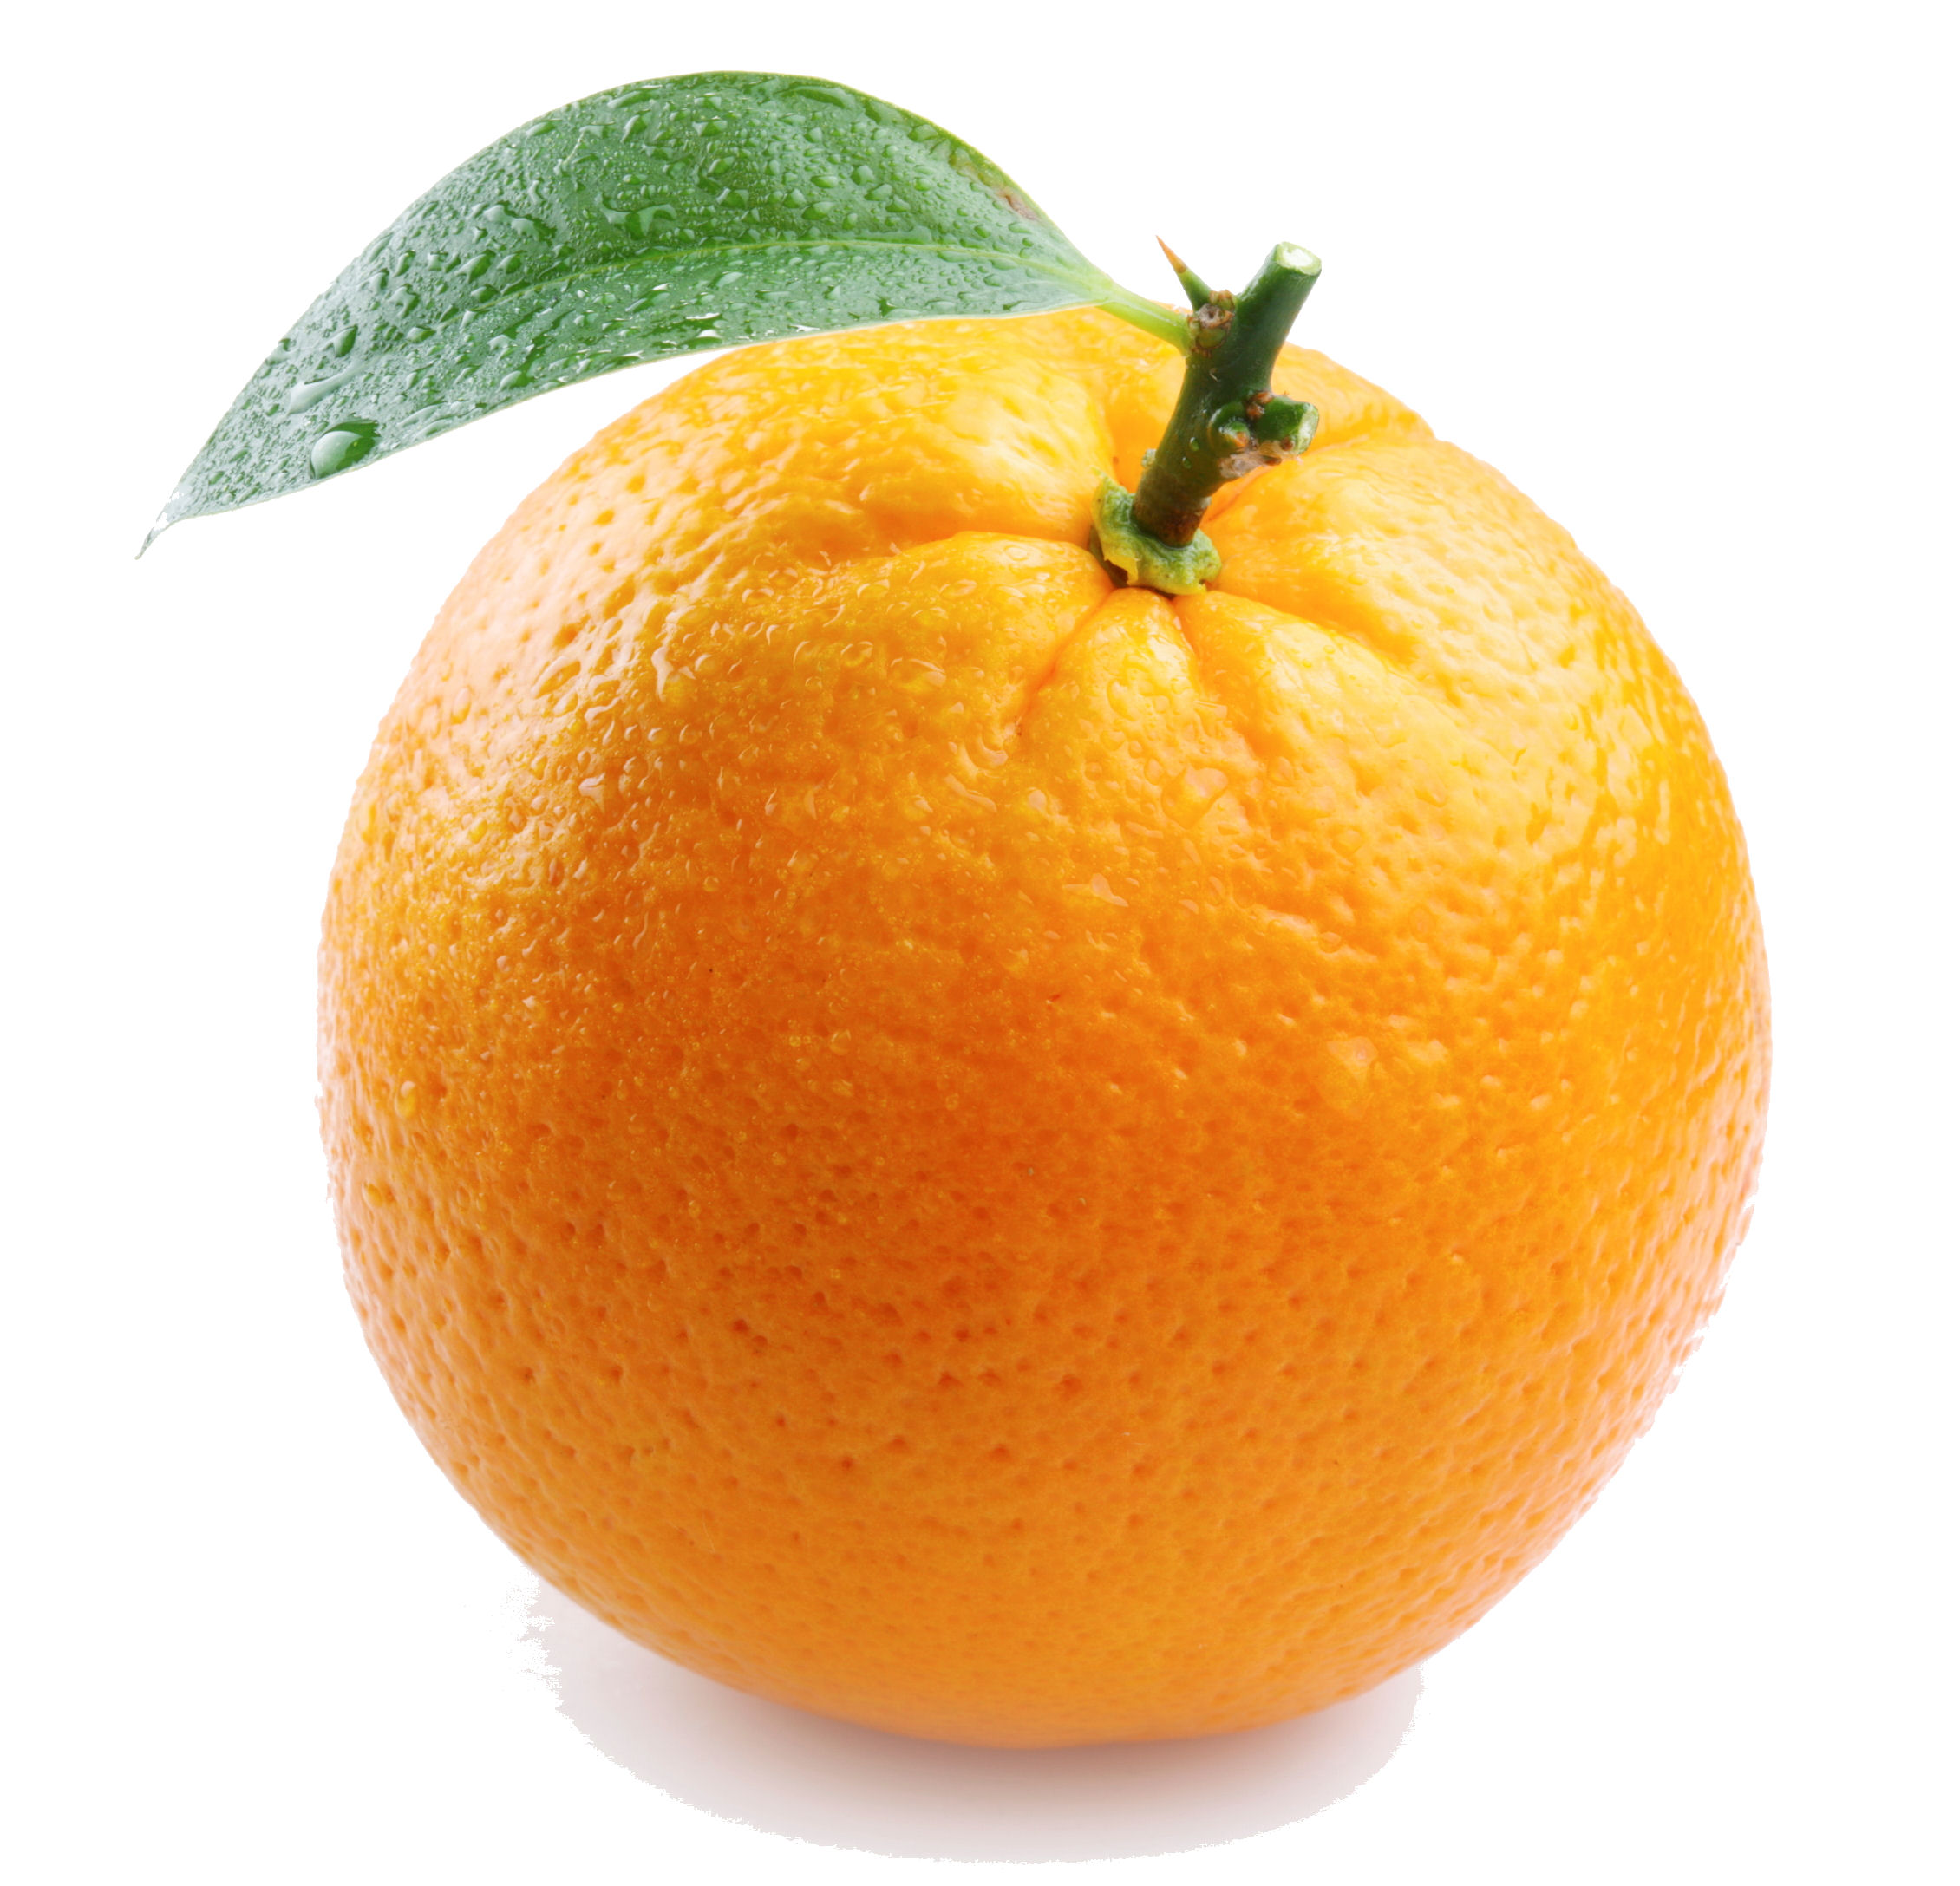 Orange images Orange Fruit HD wallpaper and background photos 2260x2175